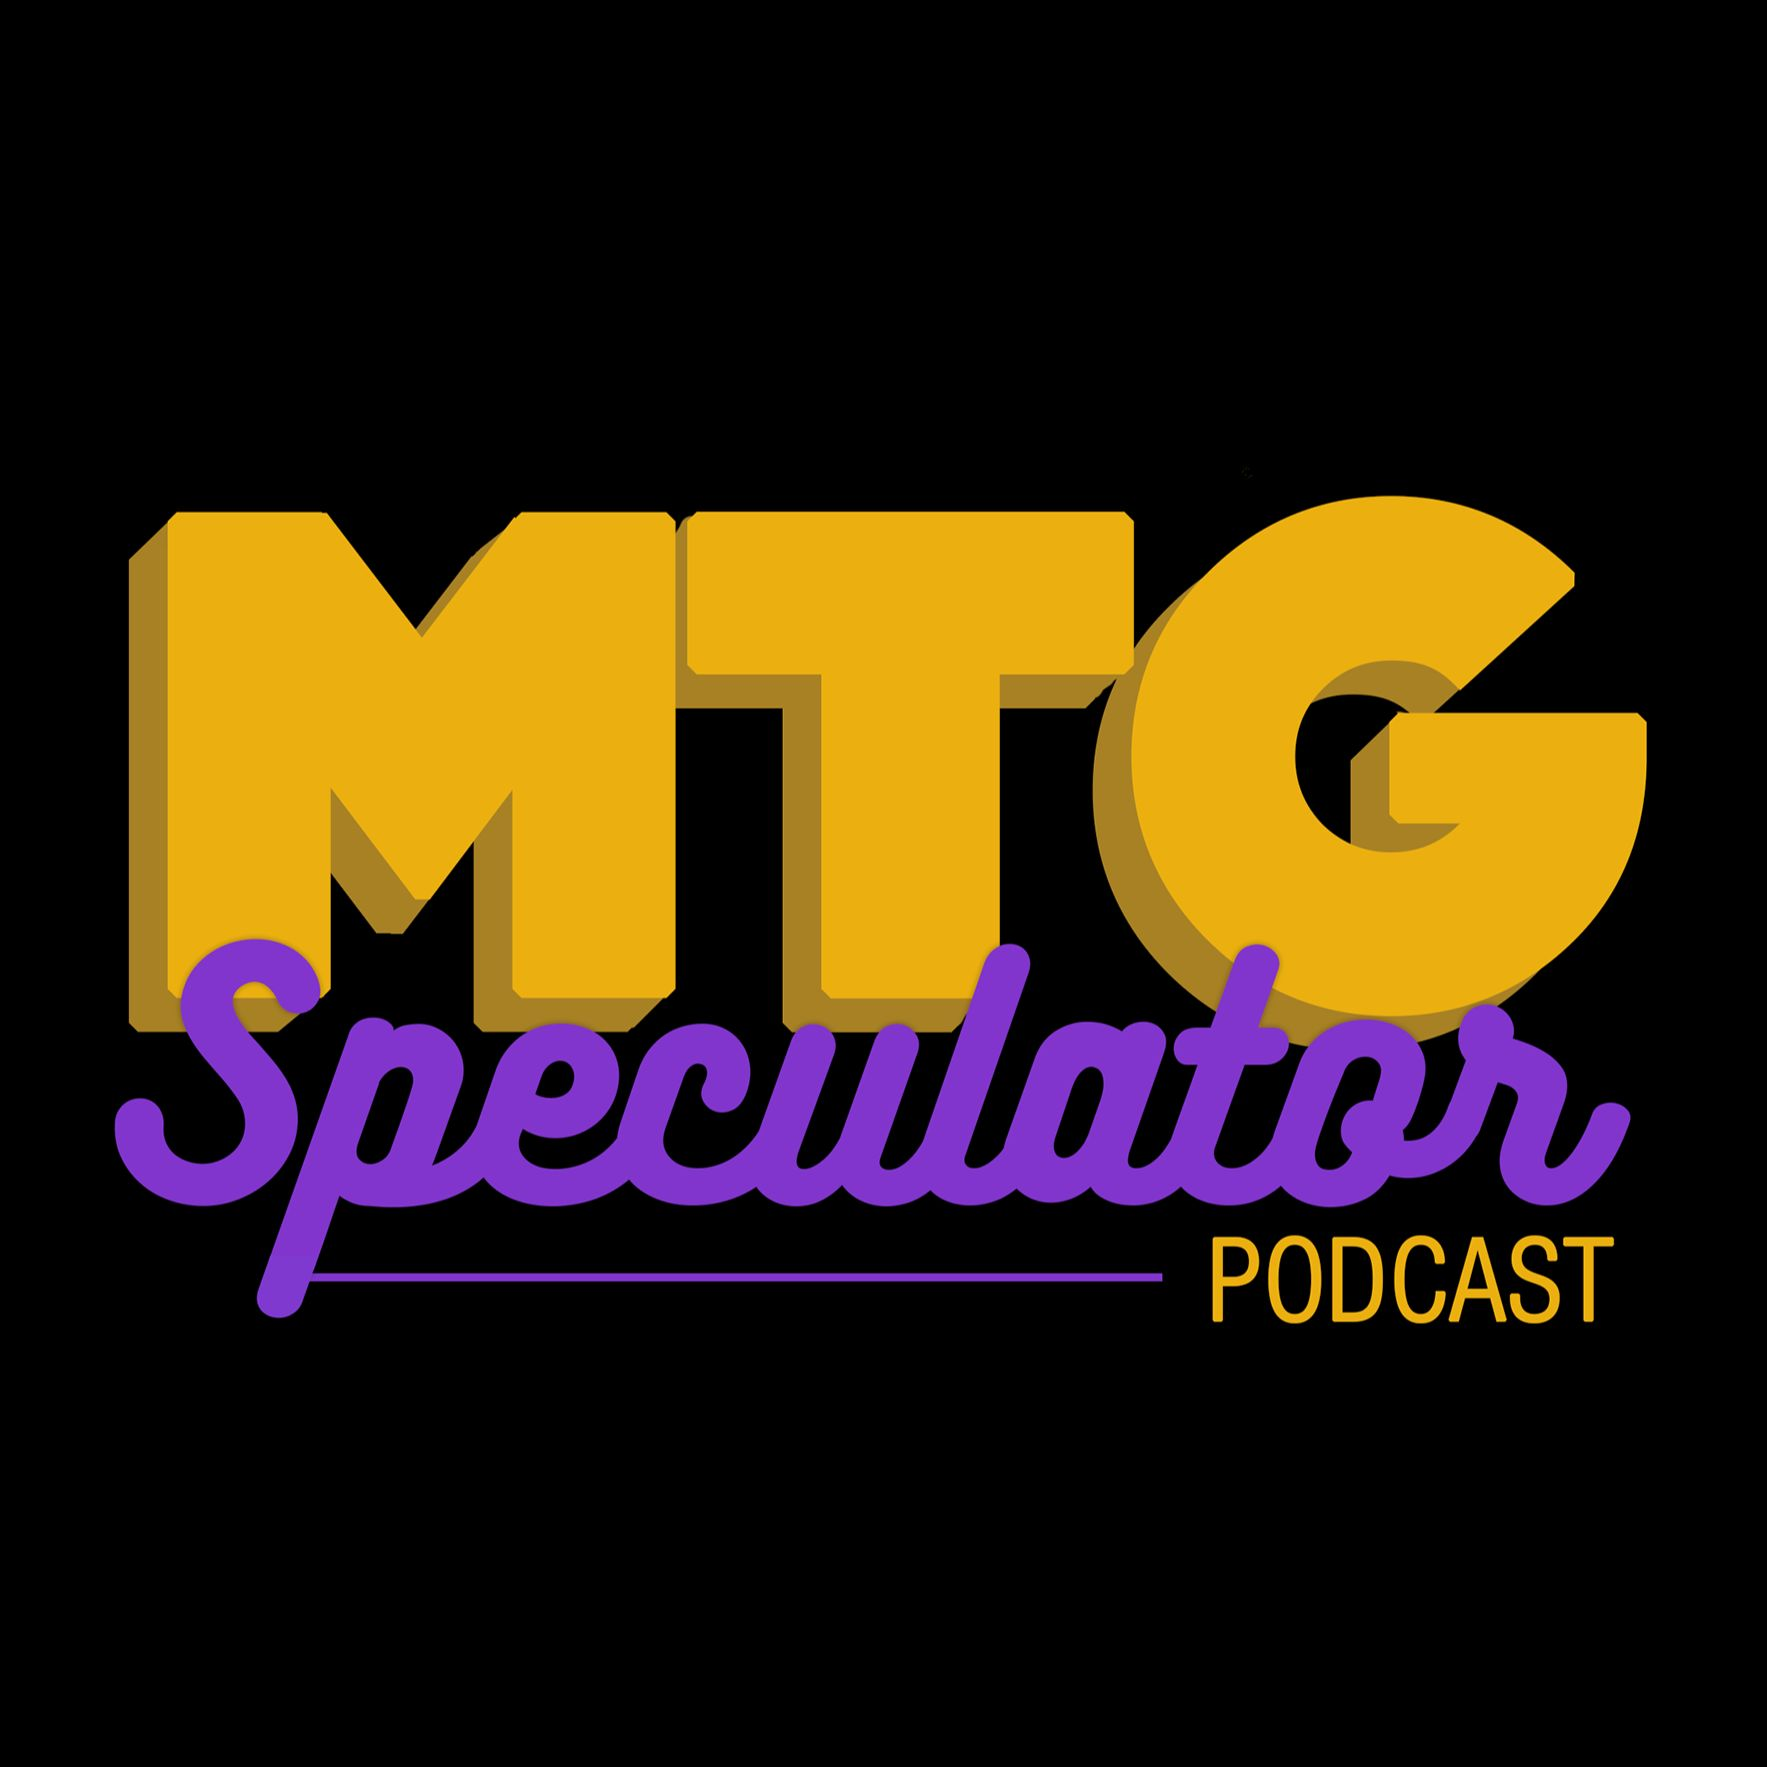 MTG Speculator Podcast